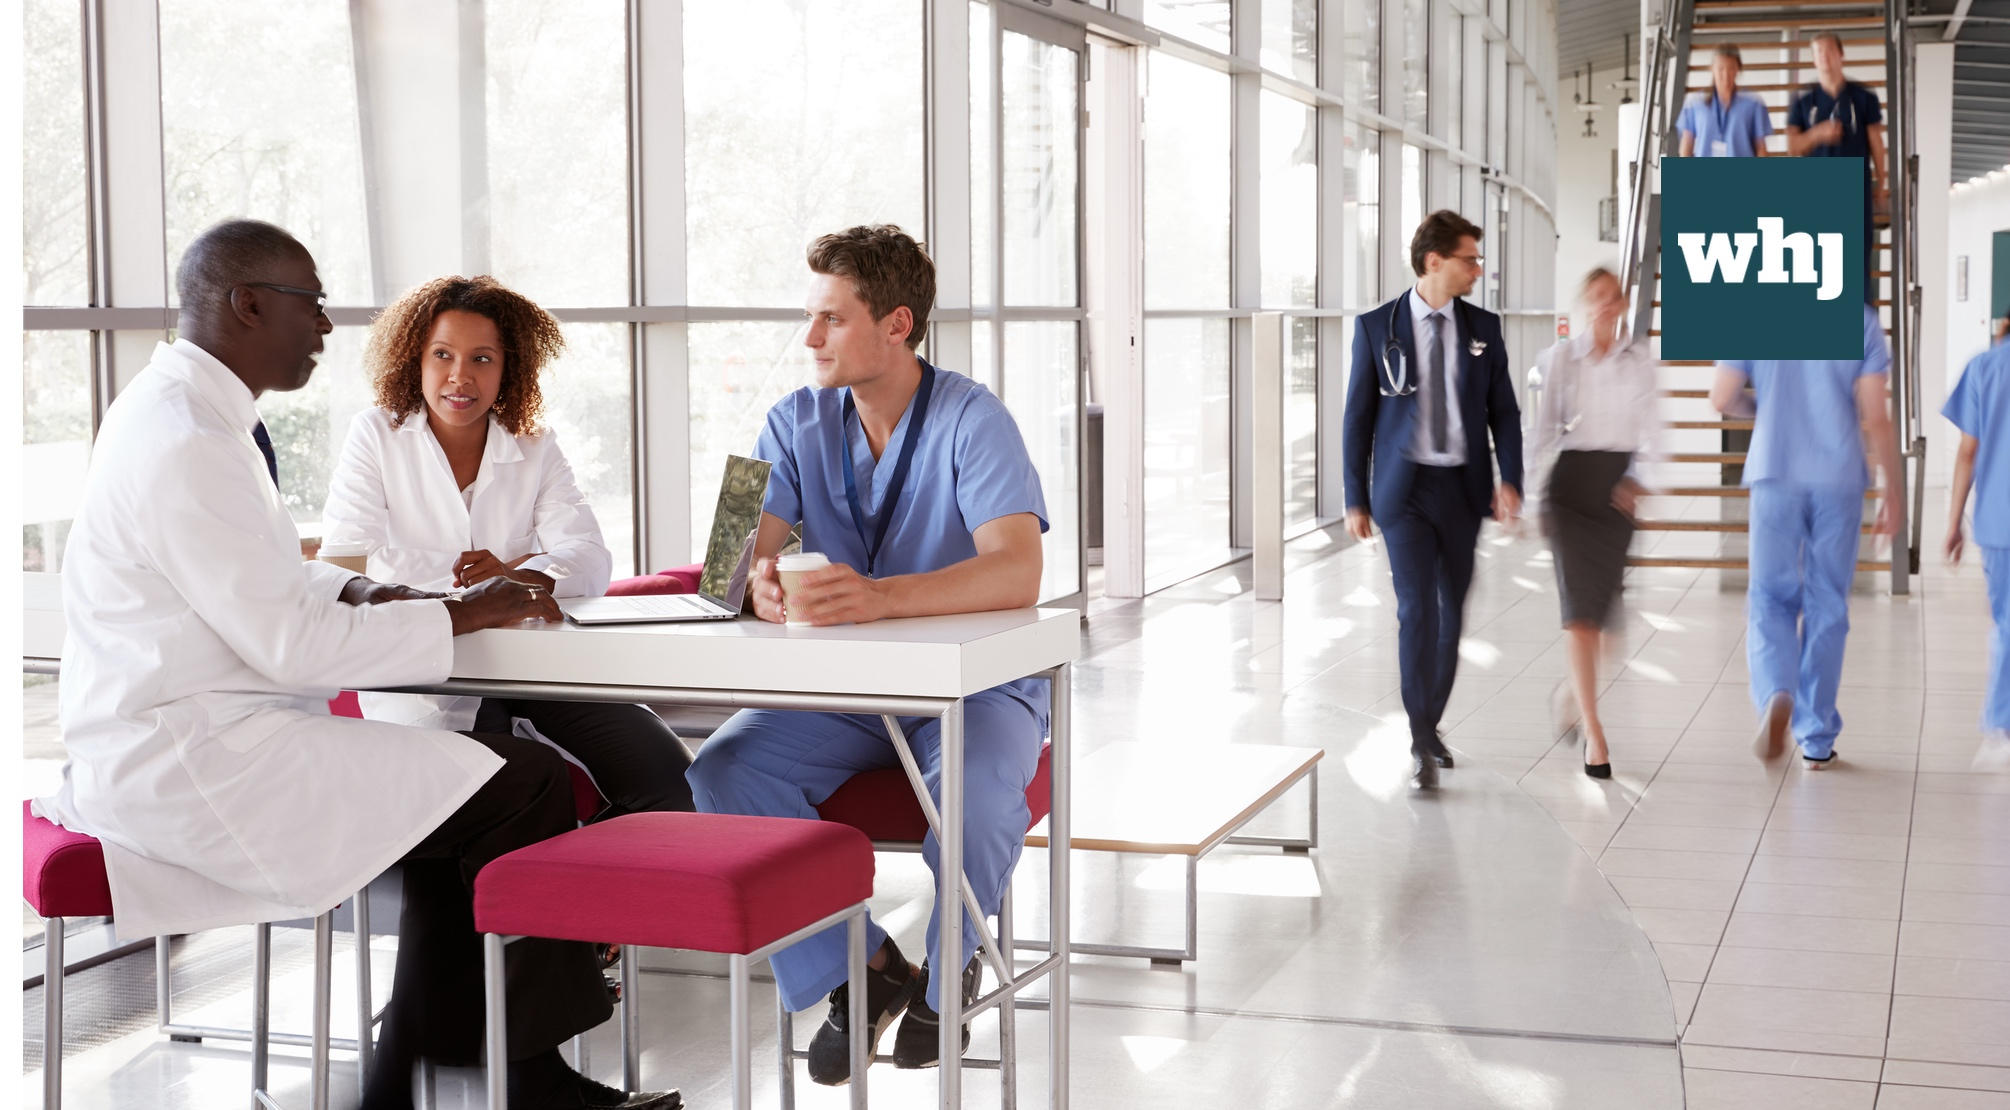 Building the hospitals of tomorrow